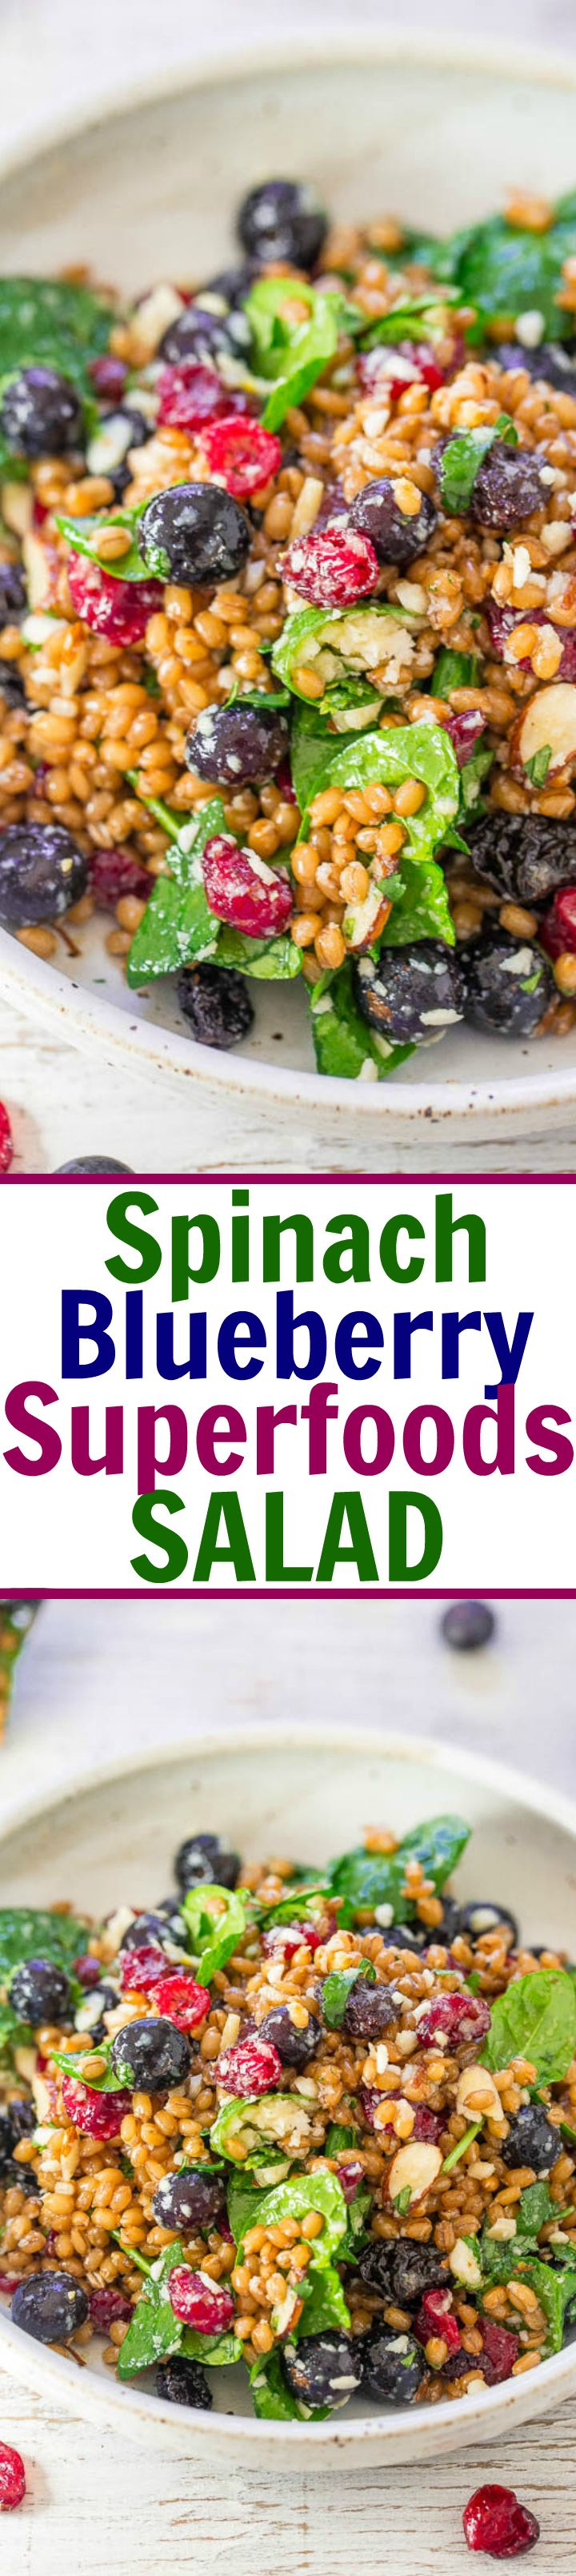 Averie Cooks Spinach Blueberry Superfoods Salad - Averie Cooks